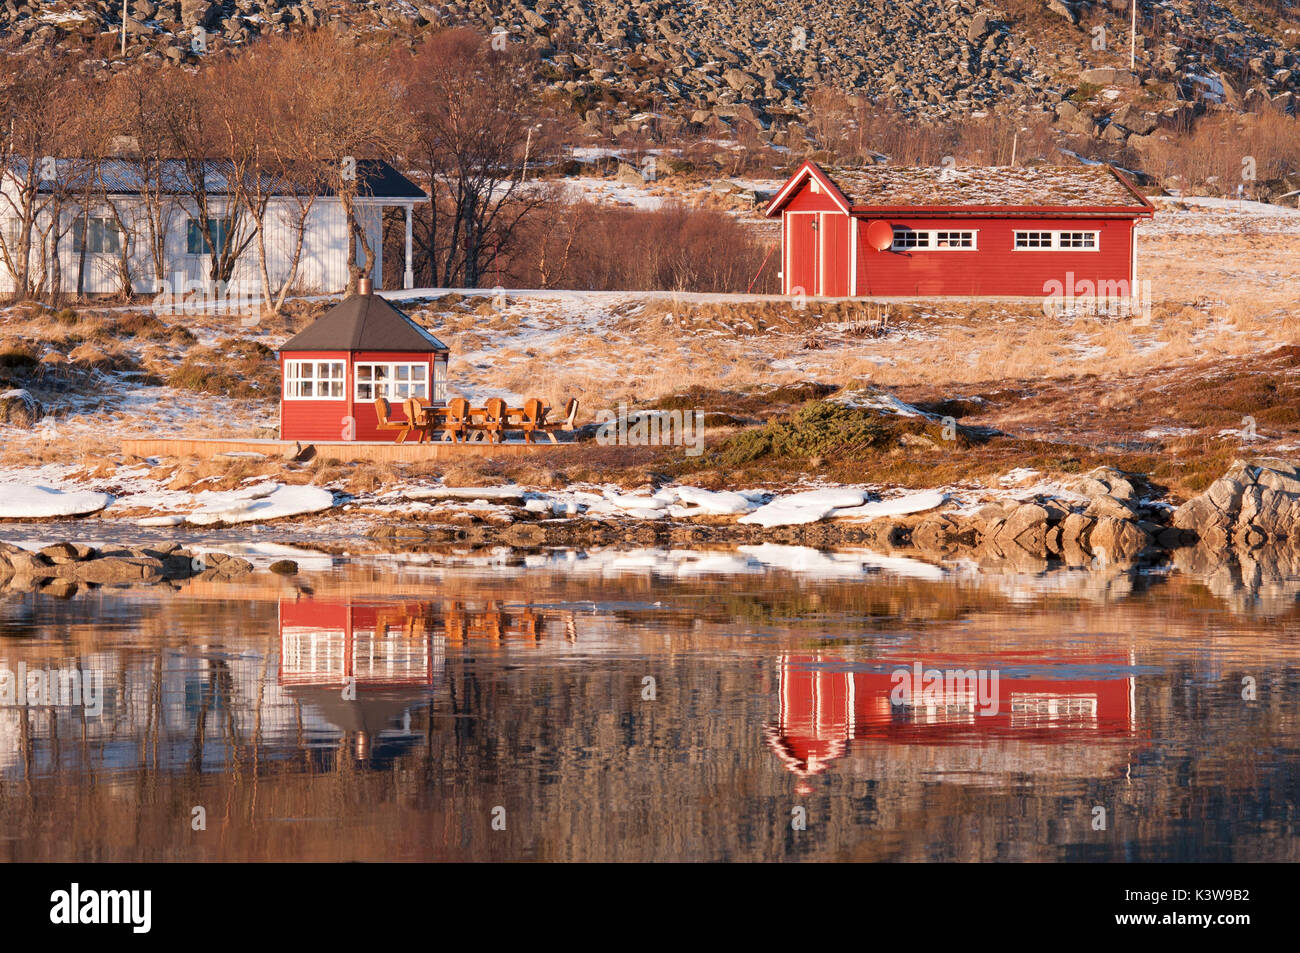 Some rorbuer reflected on the water of the near fiord in the Lofoten Islands, Norway. - Stock Image